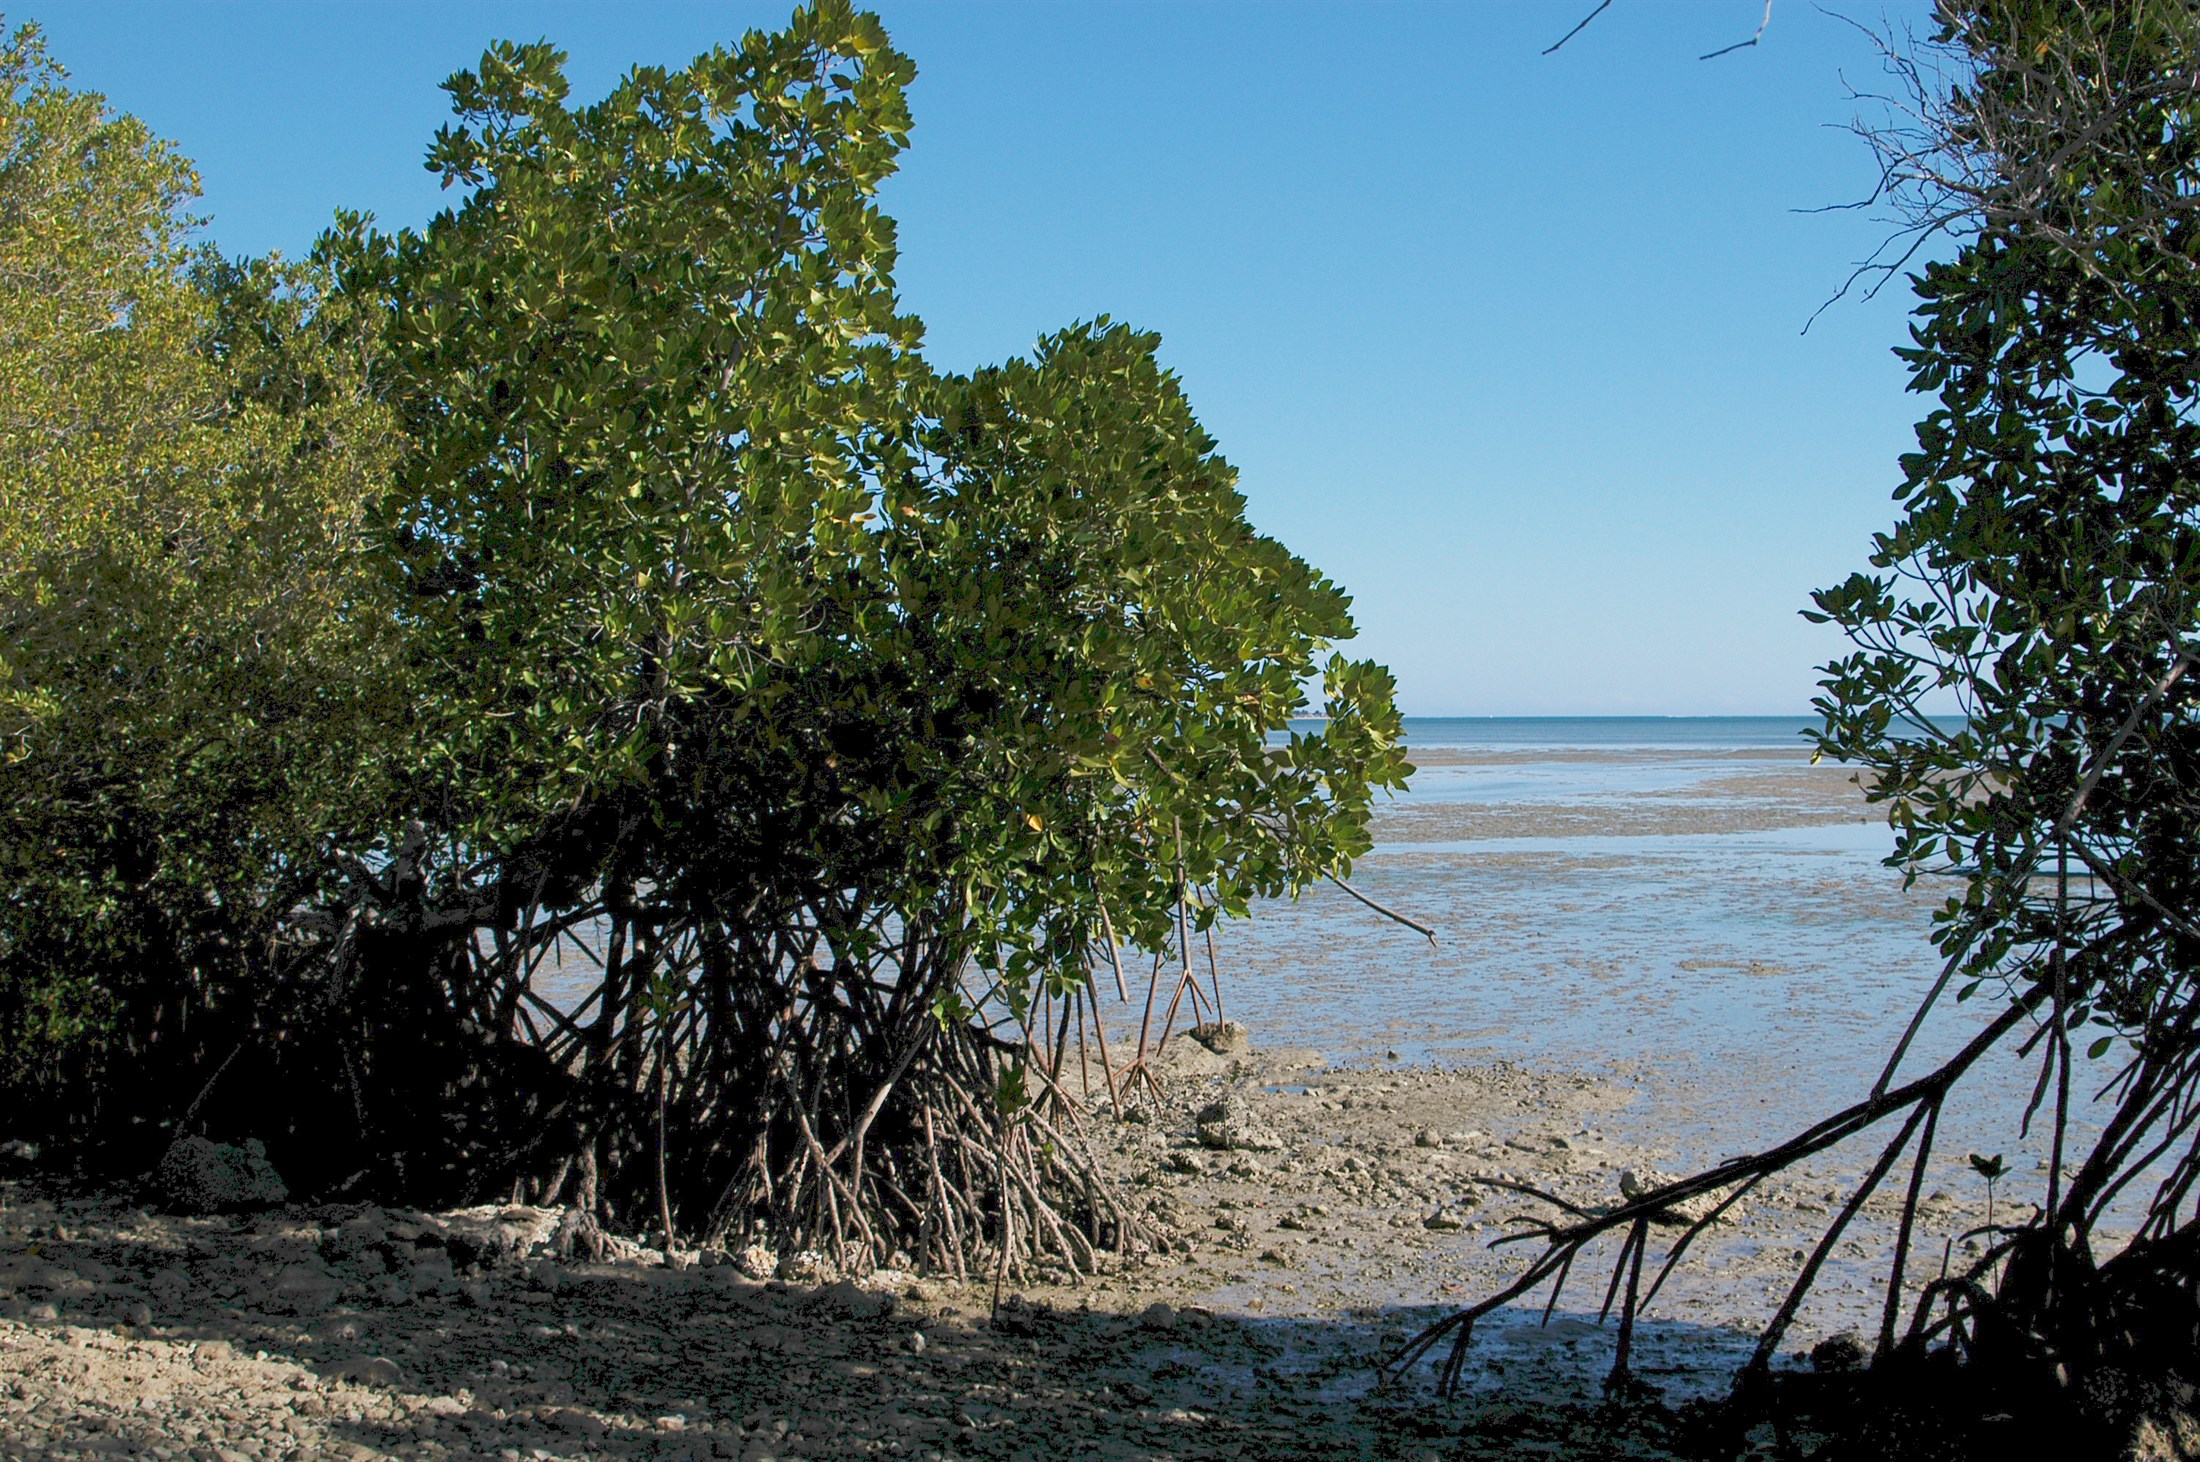 mangroves-near-toliara-south-west-madagascar_3fd4-2200x1462px